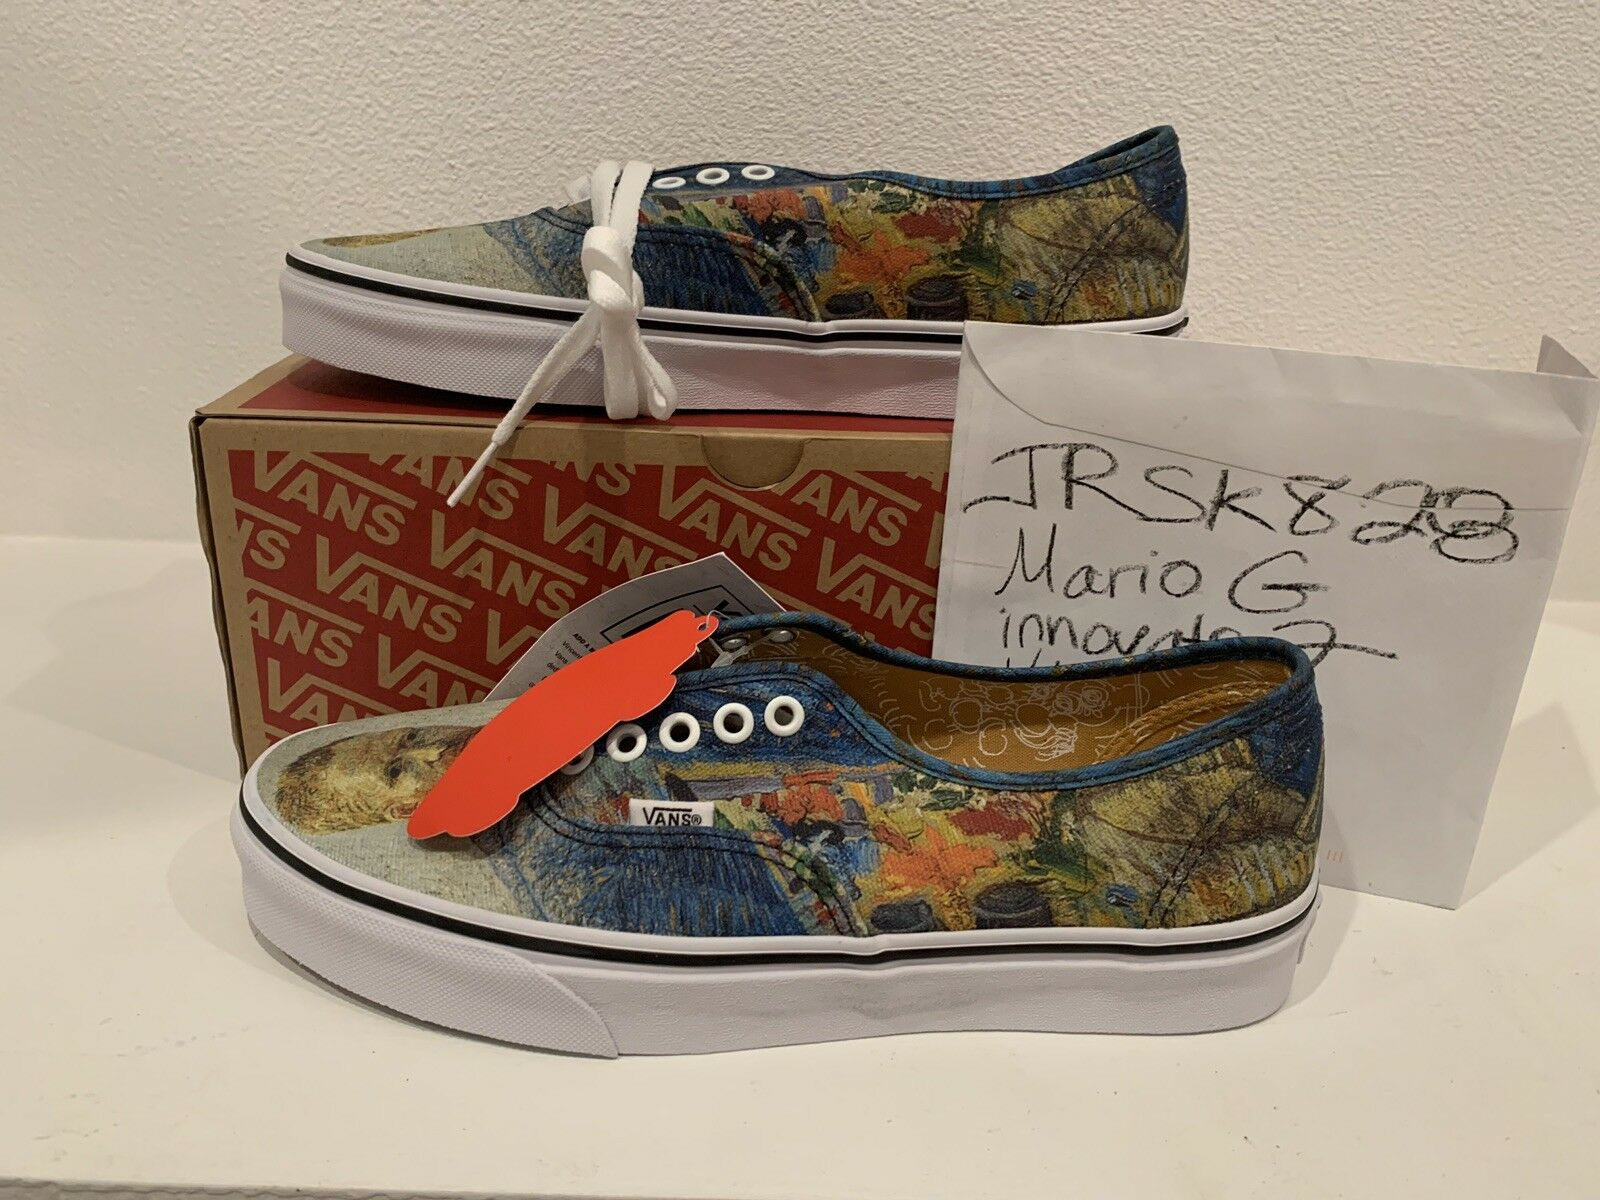 VANS X VAN GOGH MUSEUM SELF PORTRAIT sz 9 vincent authentic fear god mastermind